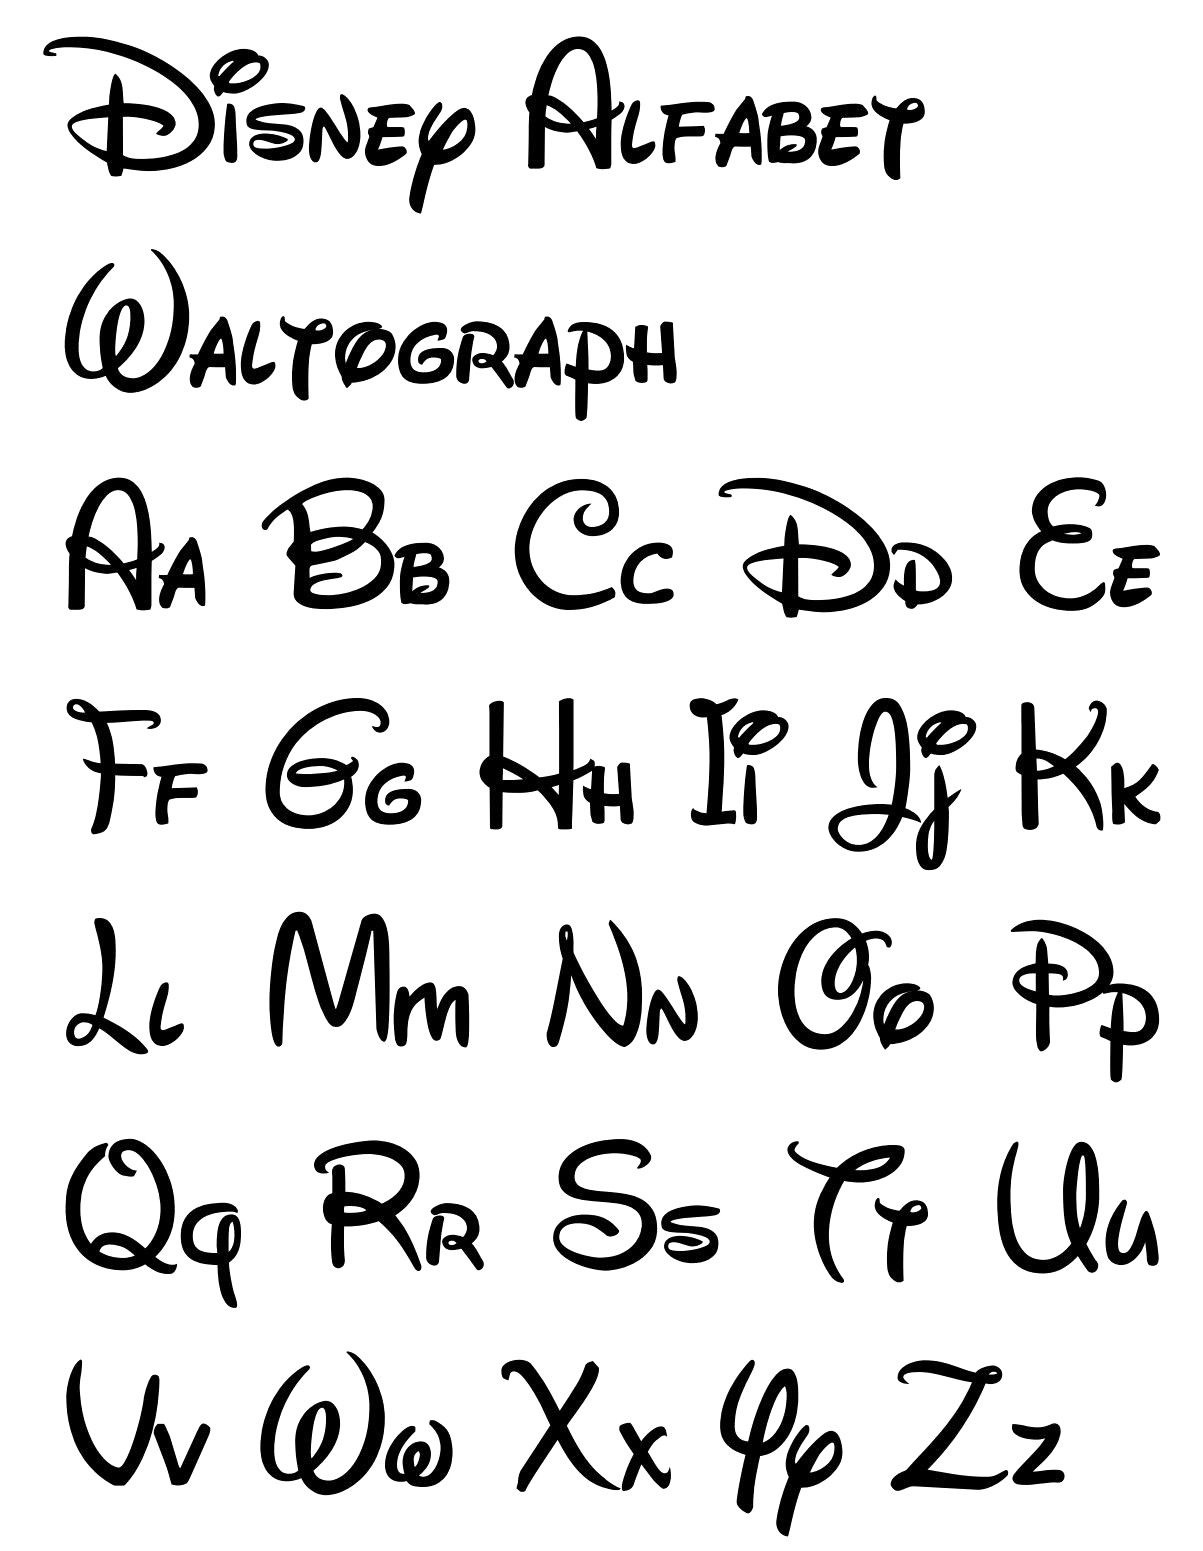 Free Printable Disney Letter Stencils | Calligraphy In 2019 | Disney - Free Printable Calligraphy Letter Stencils